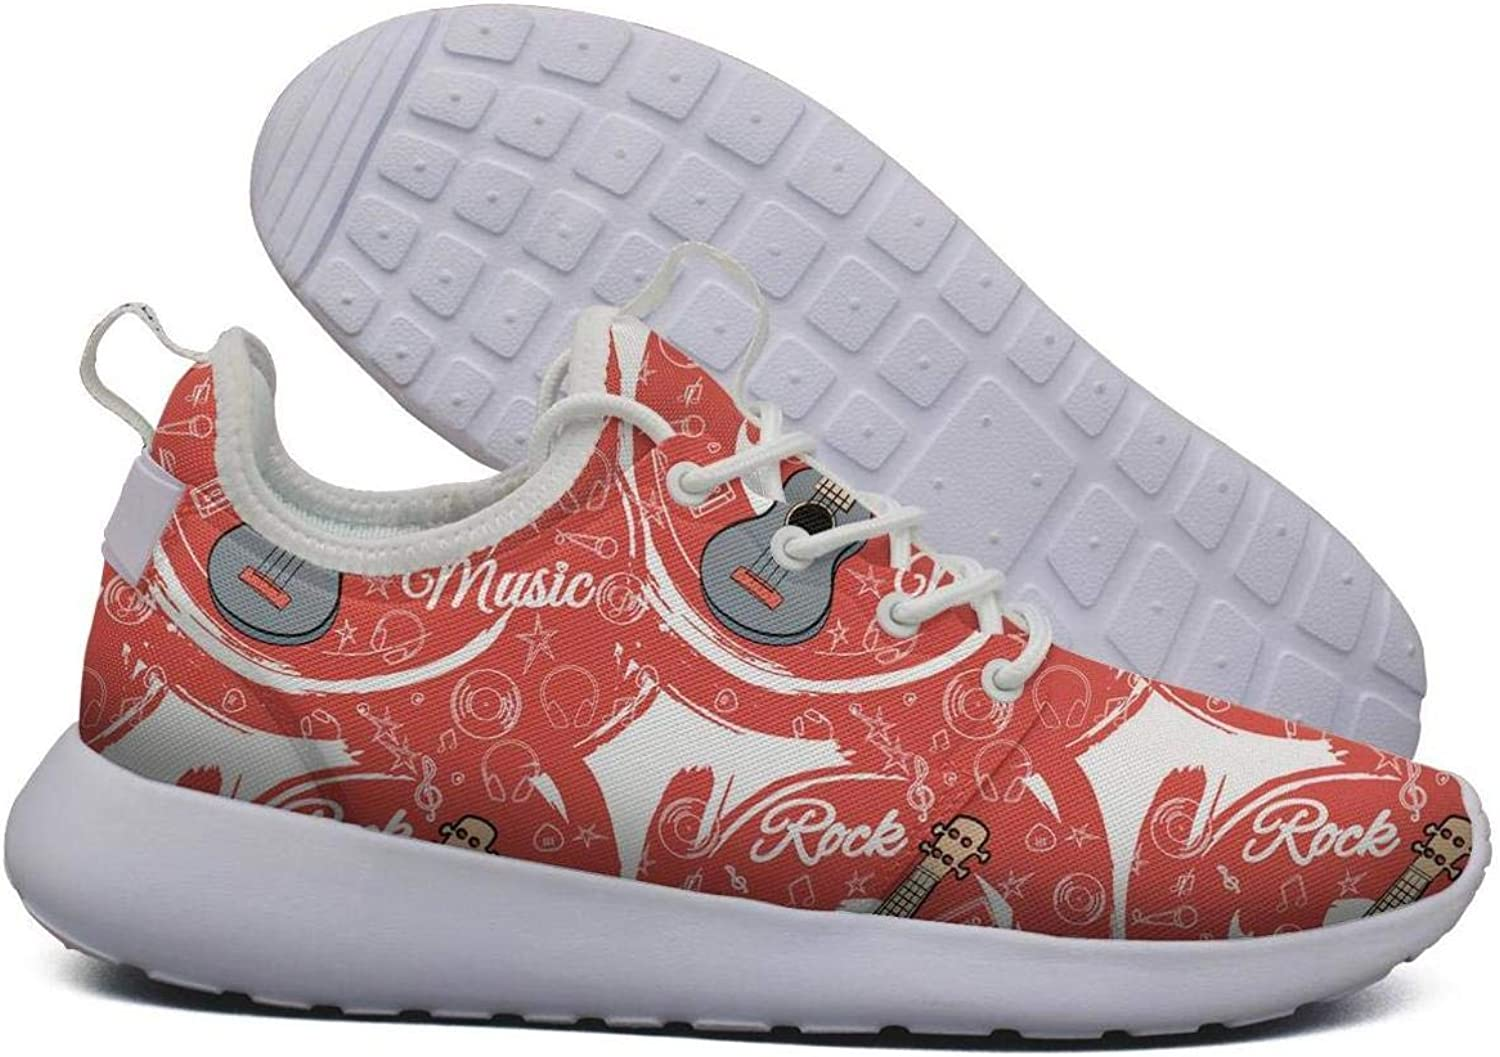 Hoohle Sports Womens Rock Music red Jazz Guitar Flex Mesh Roshe 2 Lightweight Cute Walking Jogging shoes